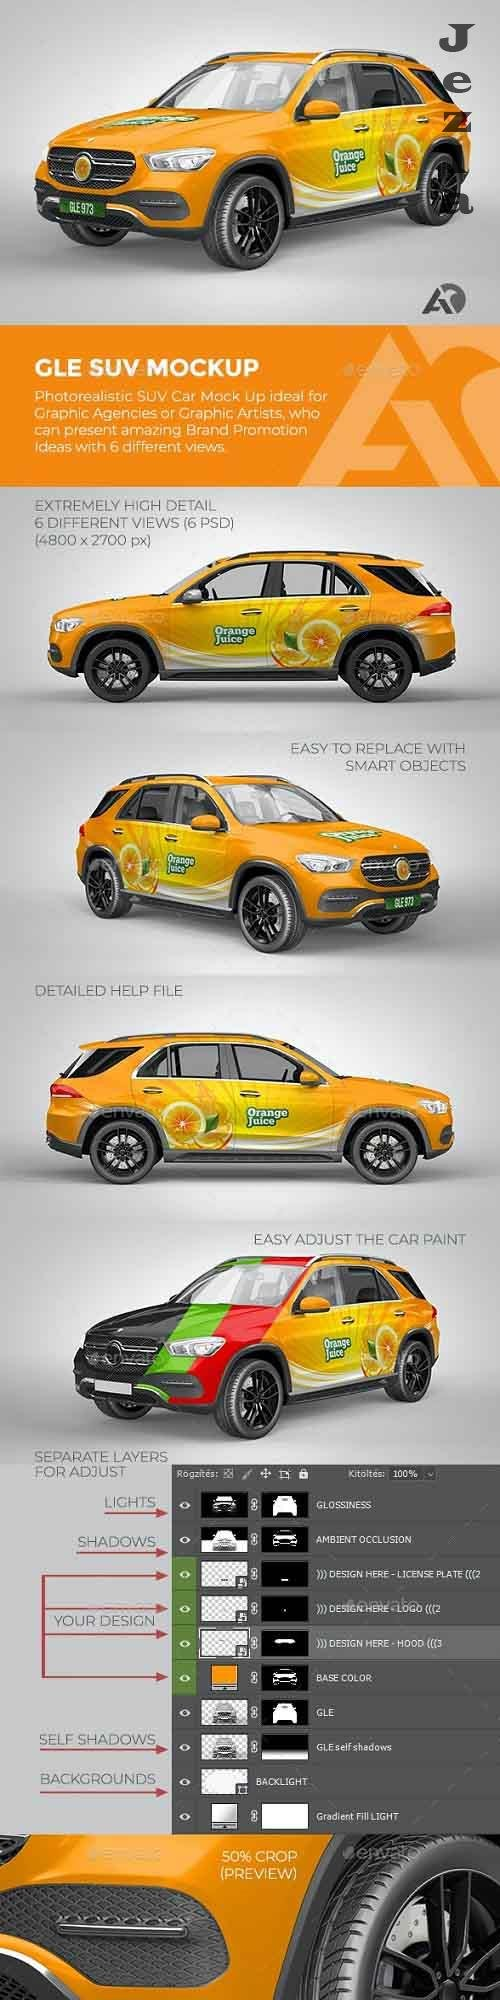 GLE SUV Mock Up for Brand Promotions 27936404